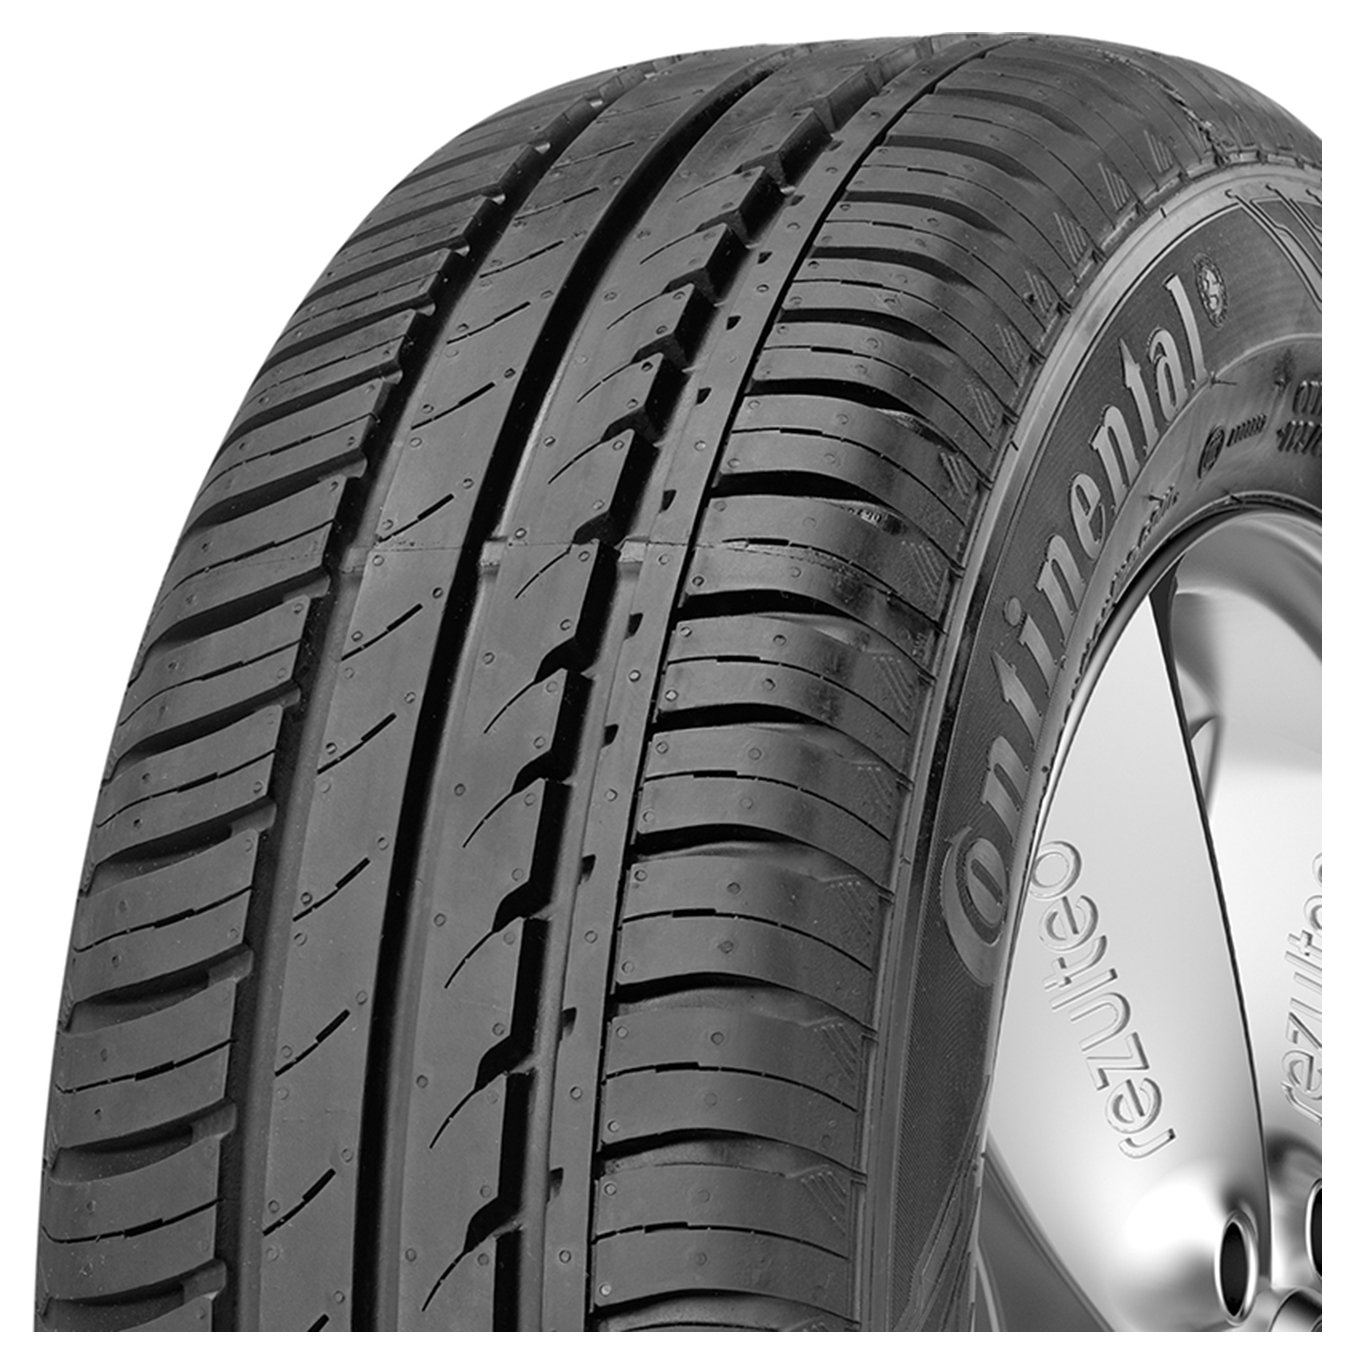 Gomme Nuove Continental 145/70 R13 71T ECOCONTACT 3 pneumatici nuovi Estivo